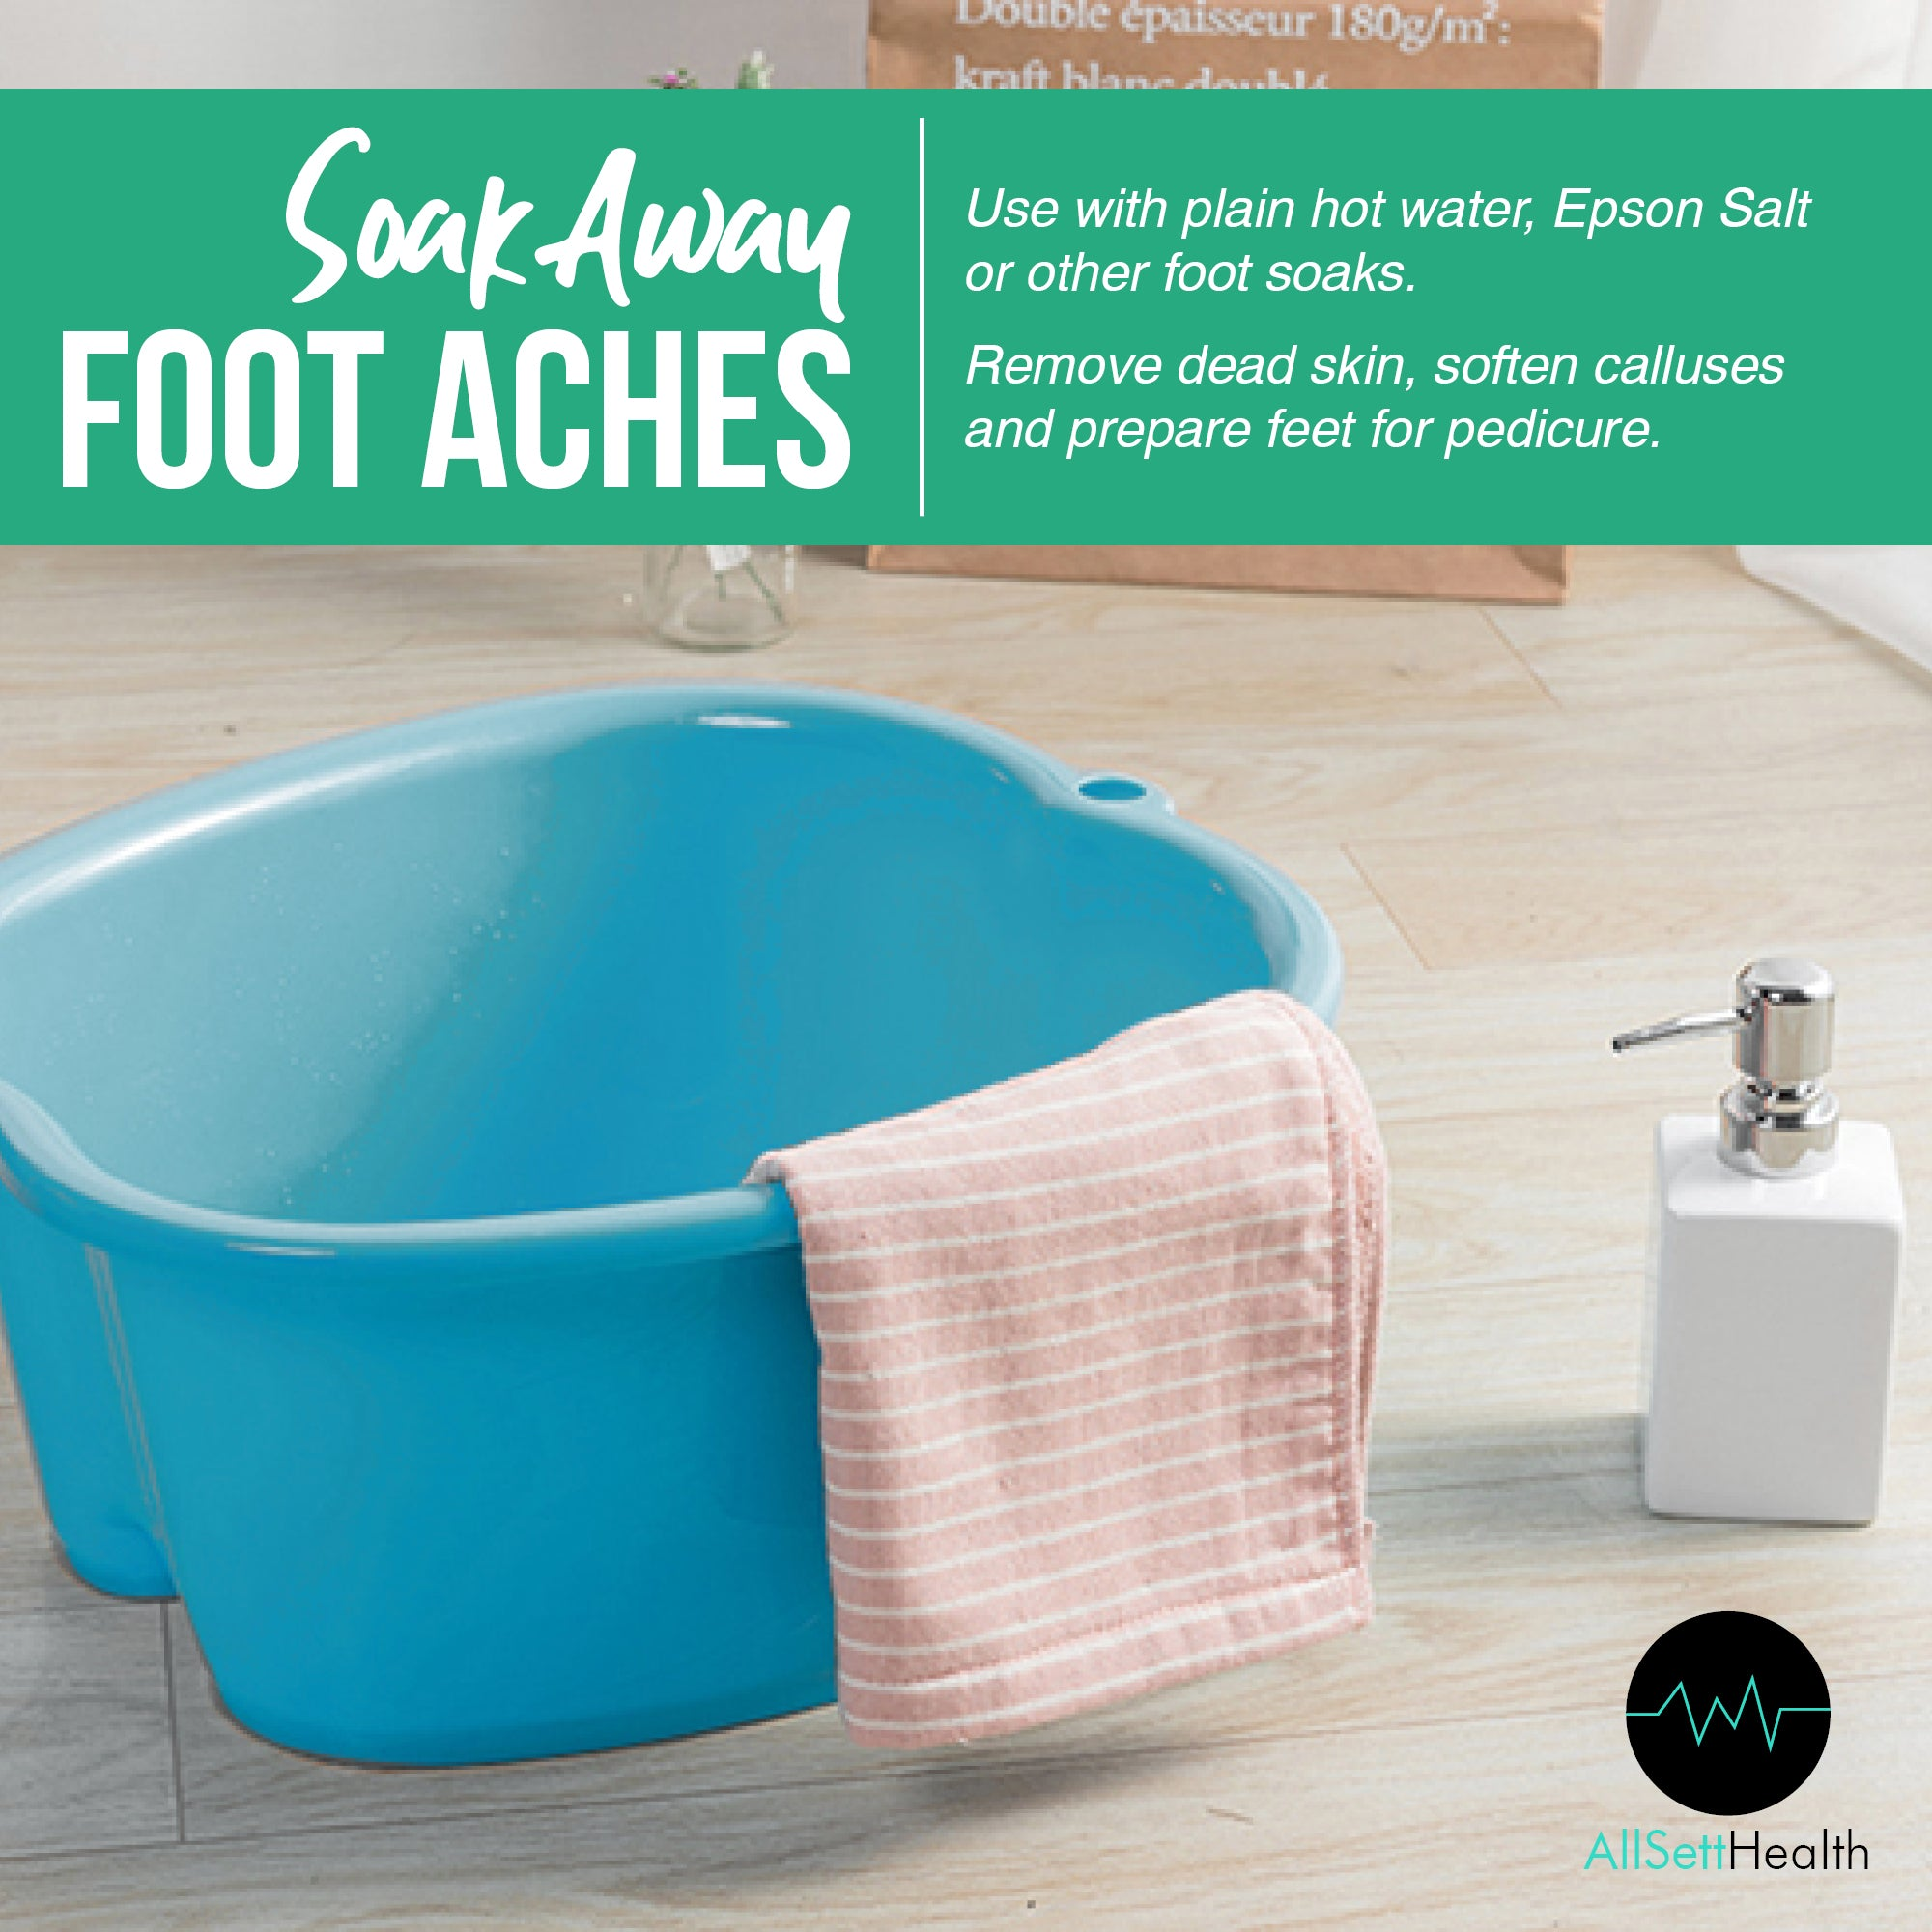 Foot Soaking Bath Basin – Large Size for Soaking Feet | Pedicure and Massager Tub for At Home Spa Treatment | Callus, Fungus, Dead Skin Remover